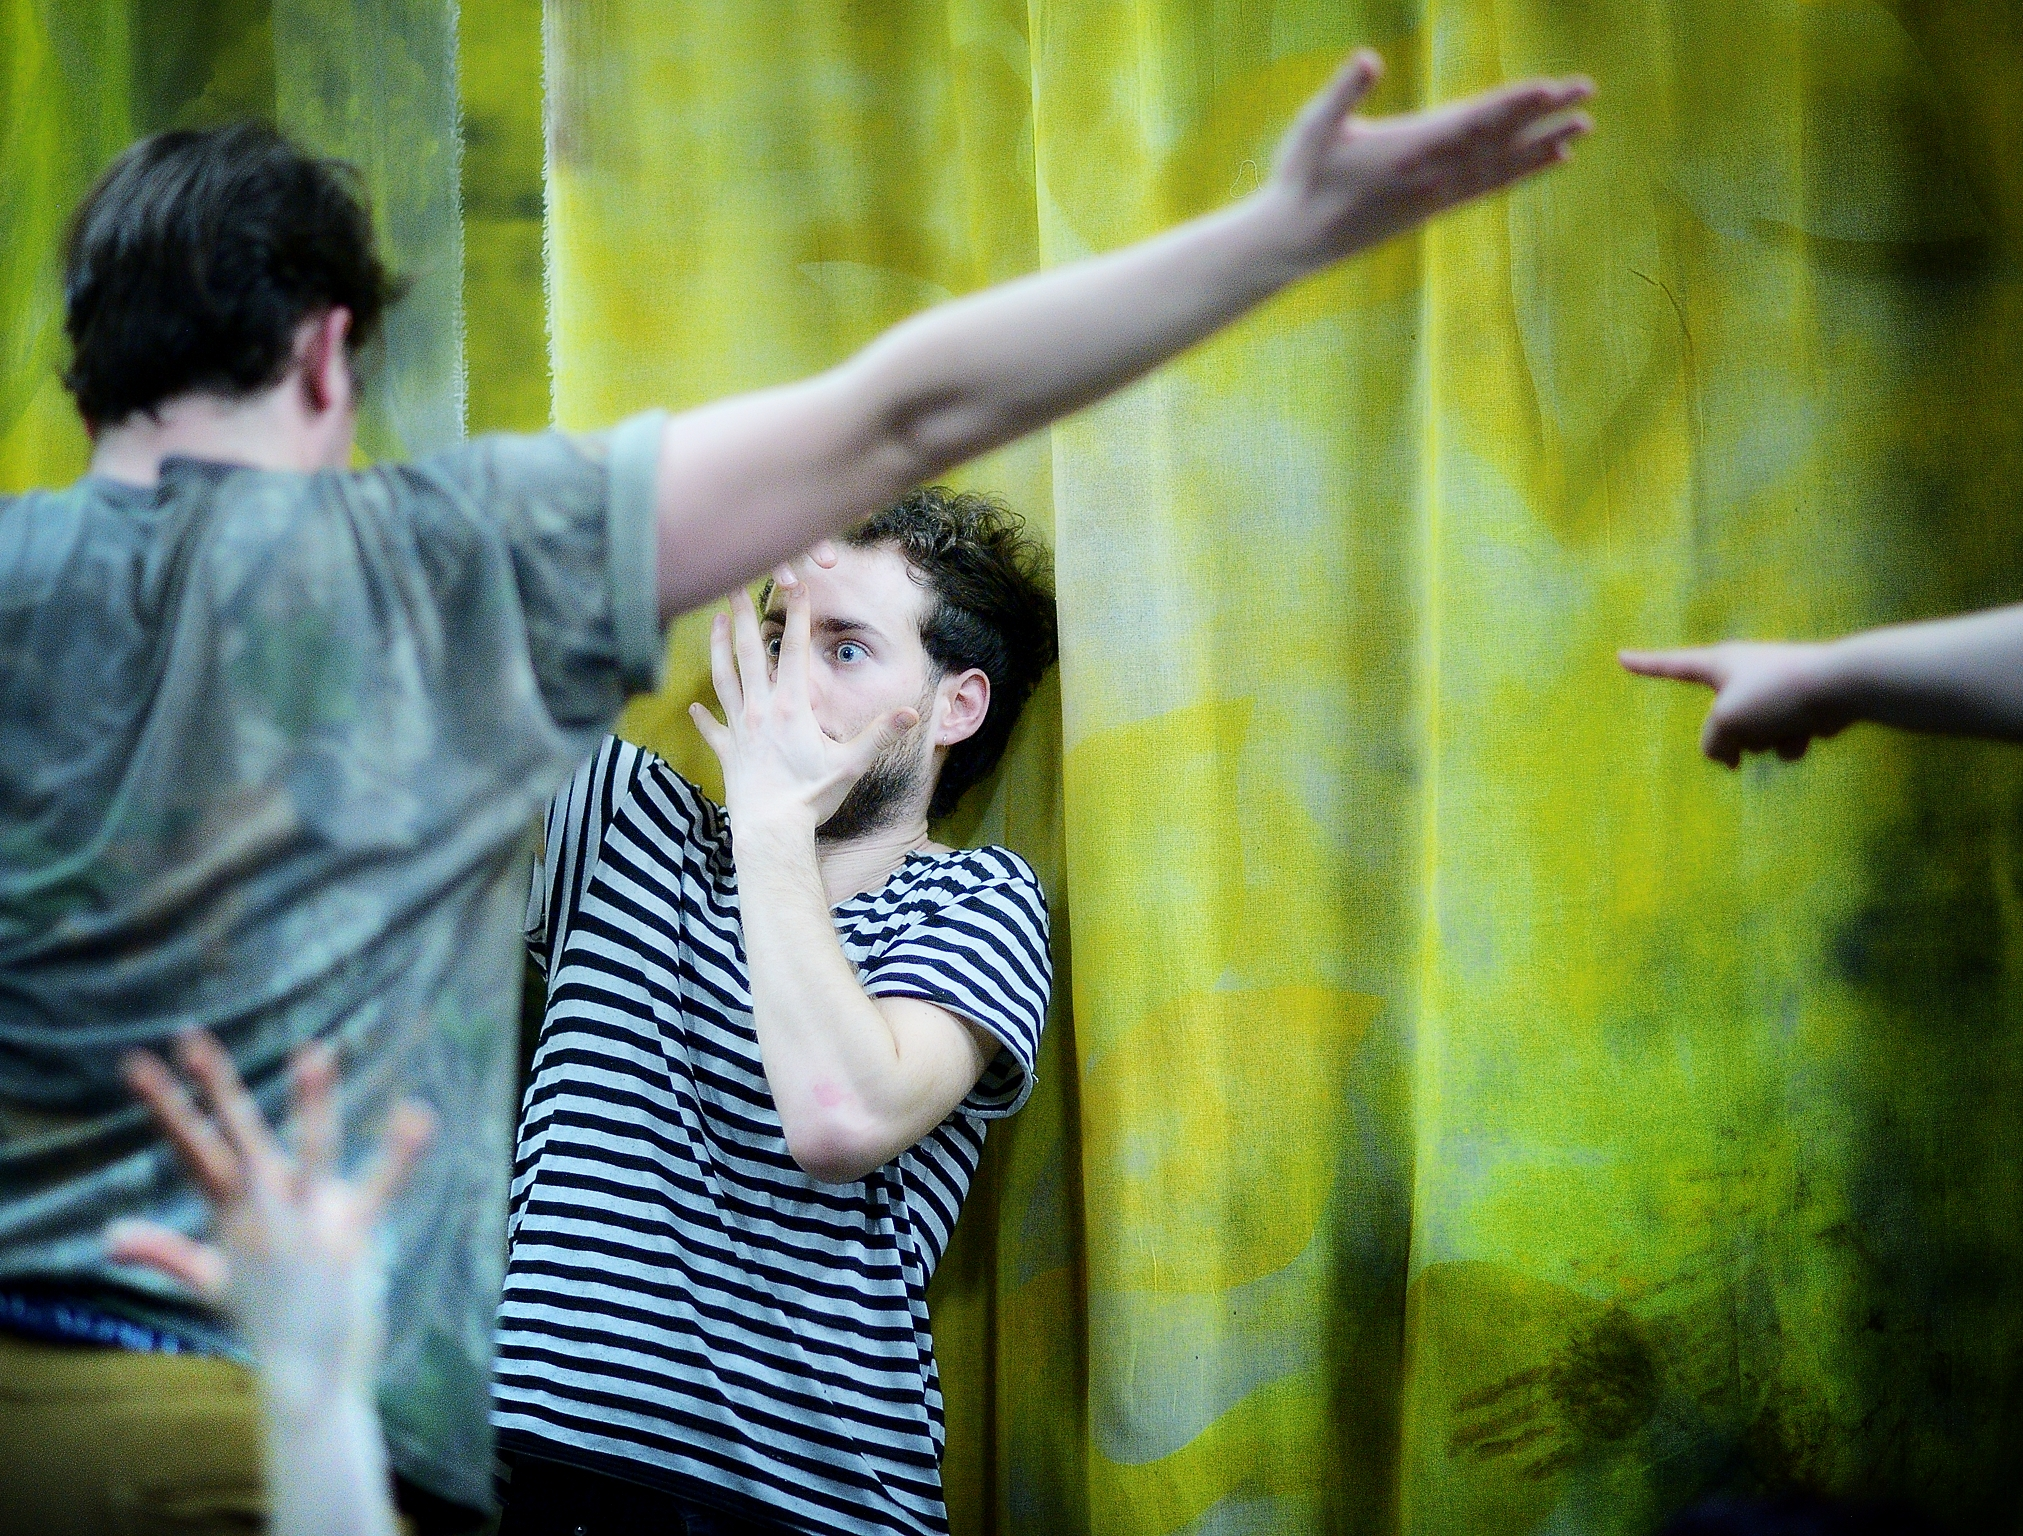 Performers  Joe Cummings  (featured) and  Jordan Moeller  rehearsing for   DangerSwitch!'s  Into the Deeps . Premiering  June 8-17  at Theater Off Jackson. Directed by  Eddie DeHais  and  Alyza DelPan-Monley .  Photo credit:  Joe Iano